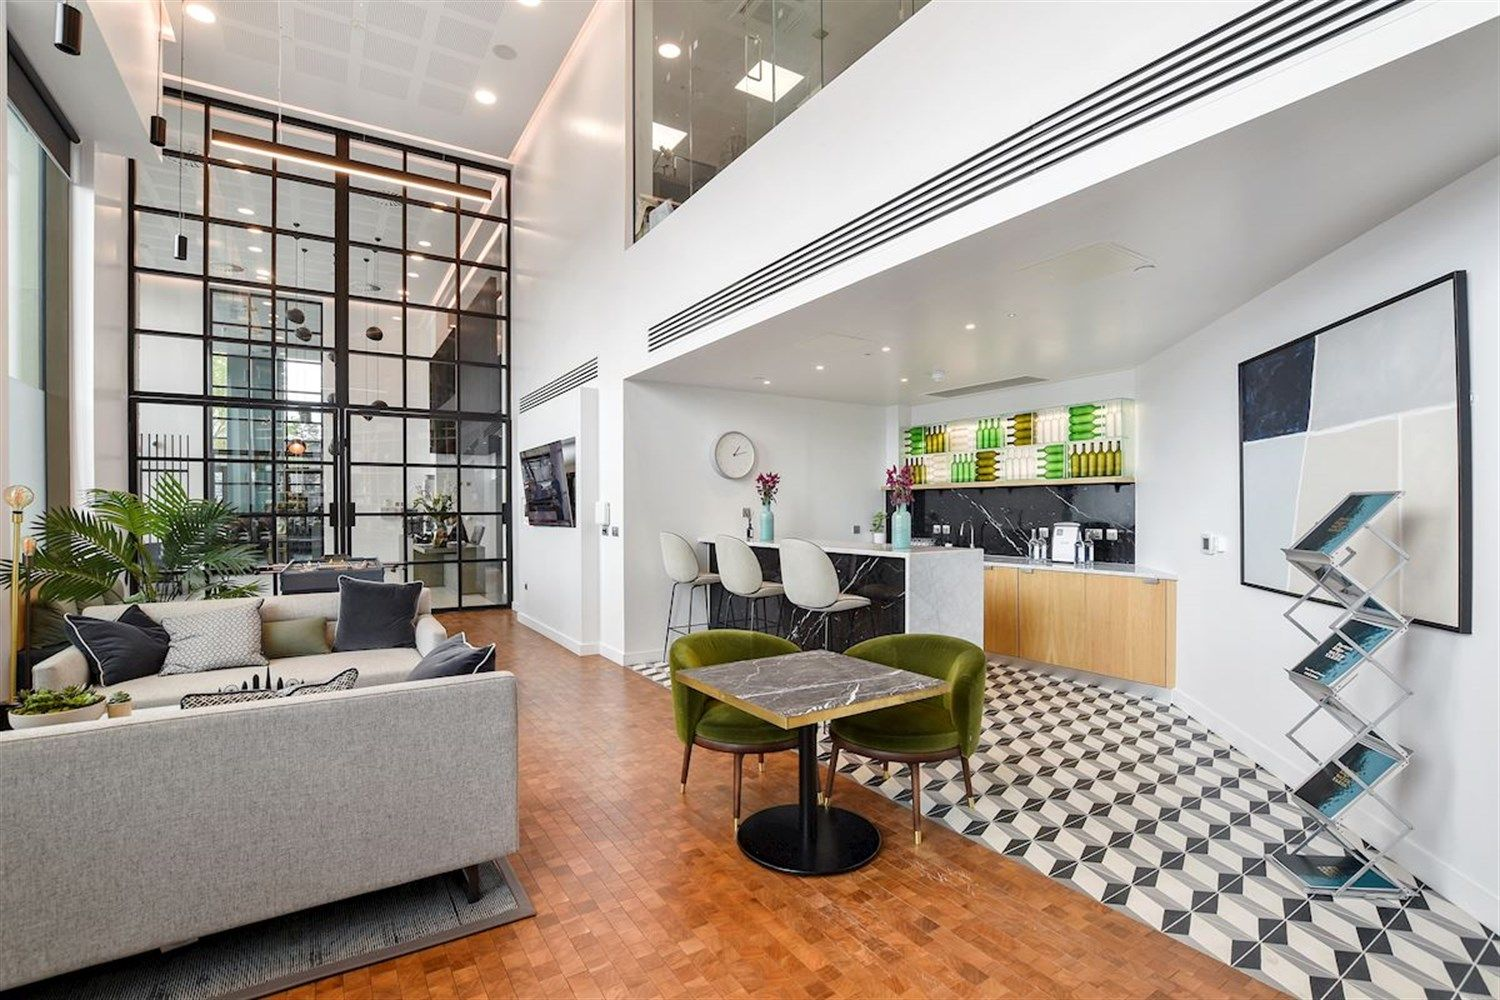 The common area at Porter's Edge, a Build To Rent development in South East London.